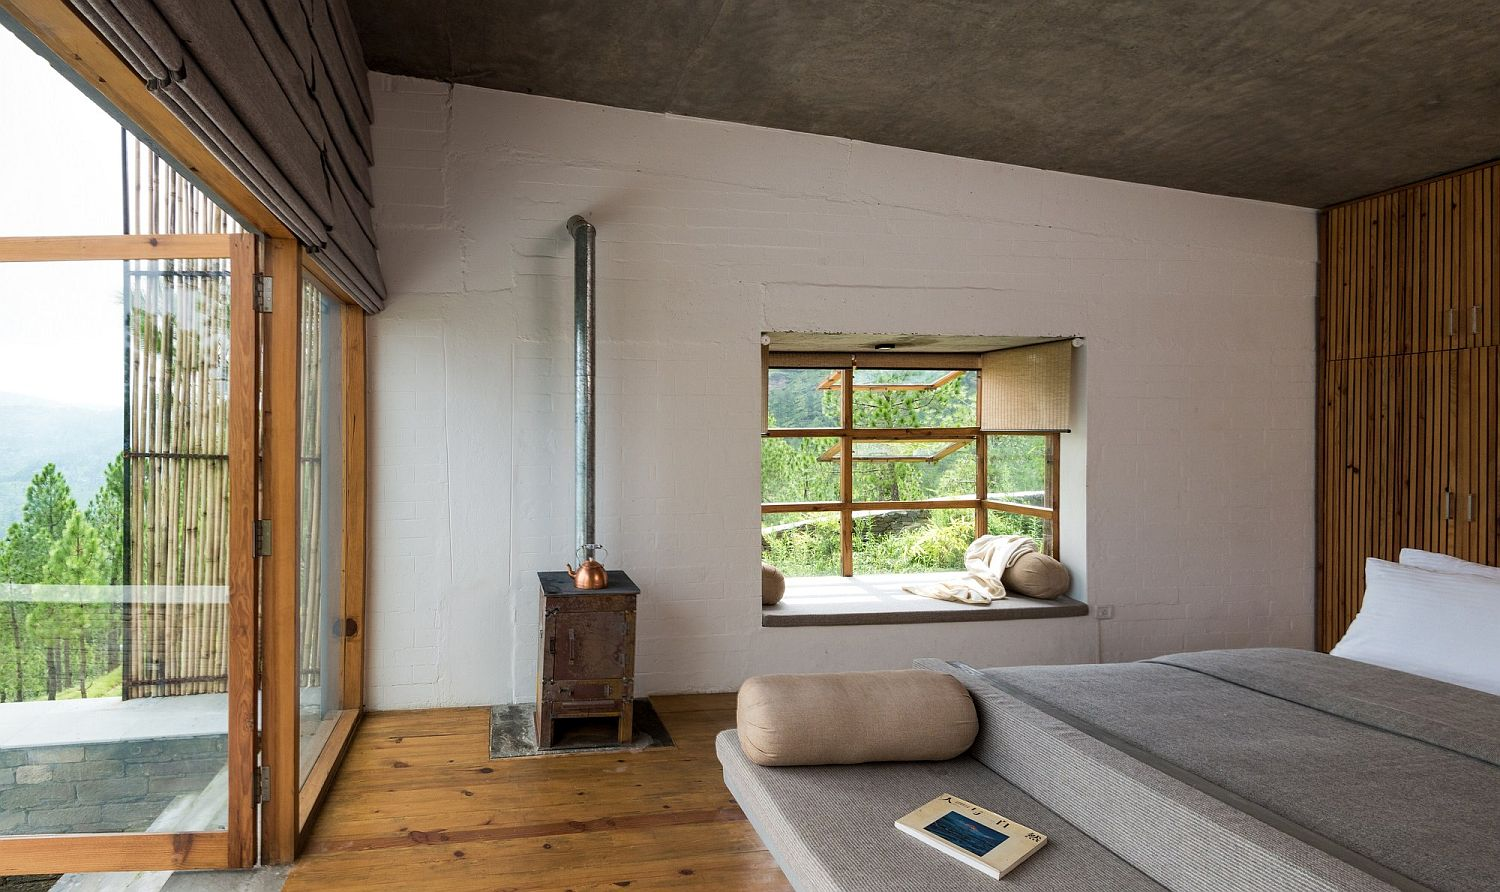 Wood, rustic finsihes and bamboo give the bedroom of the Himalayan hotel a cozy appeal